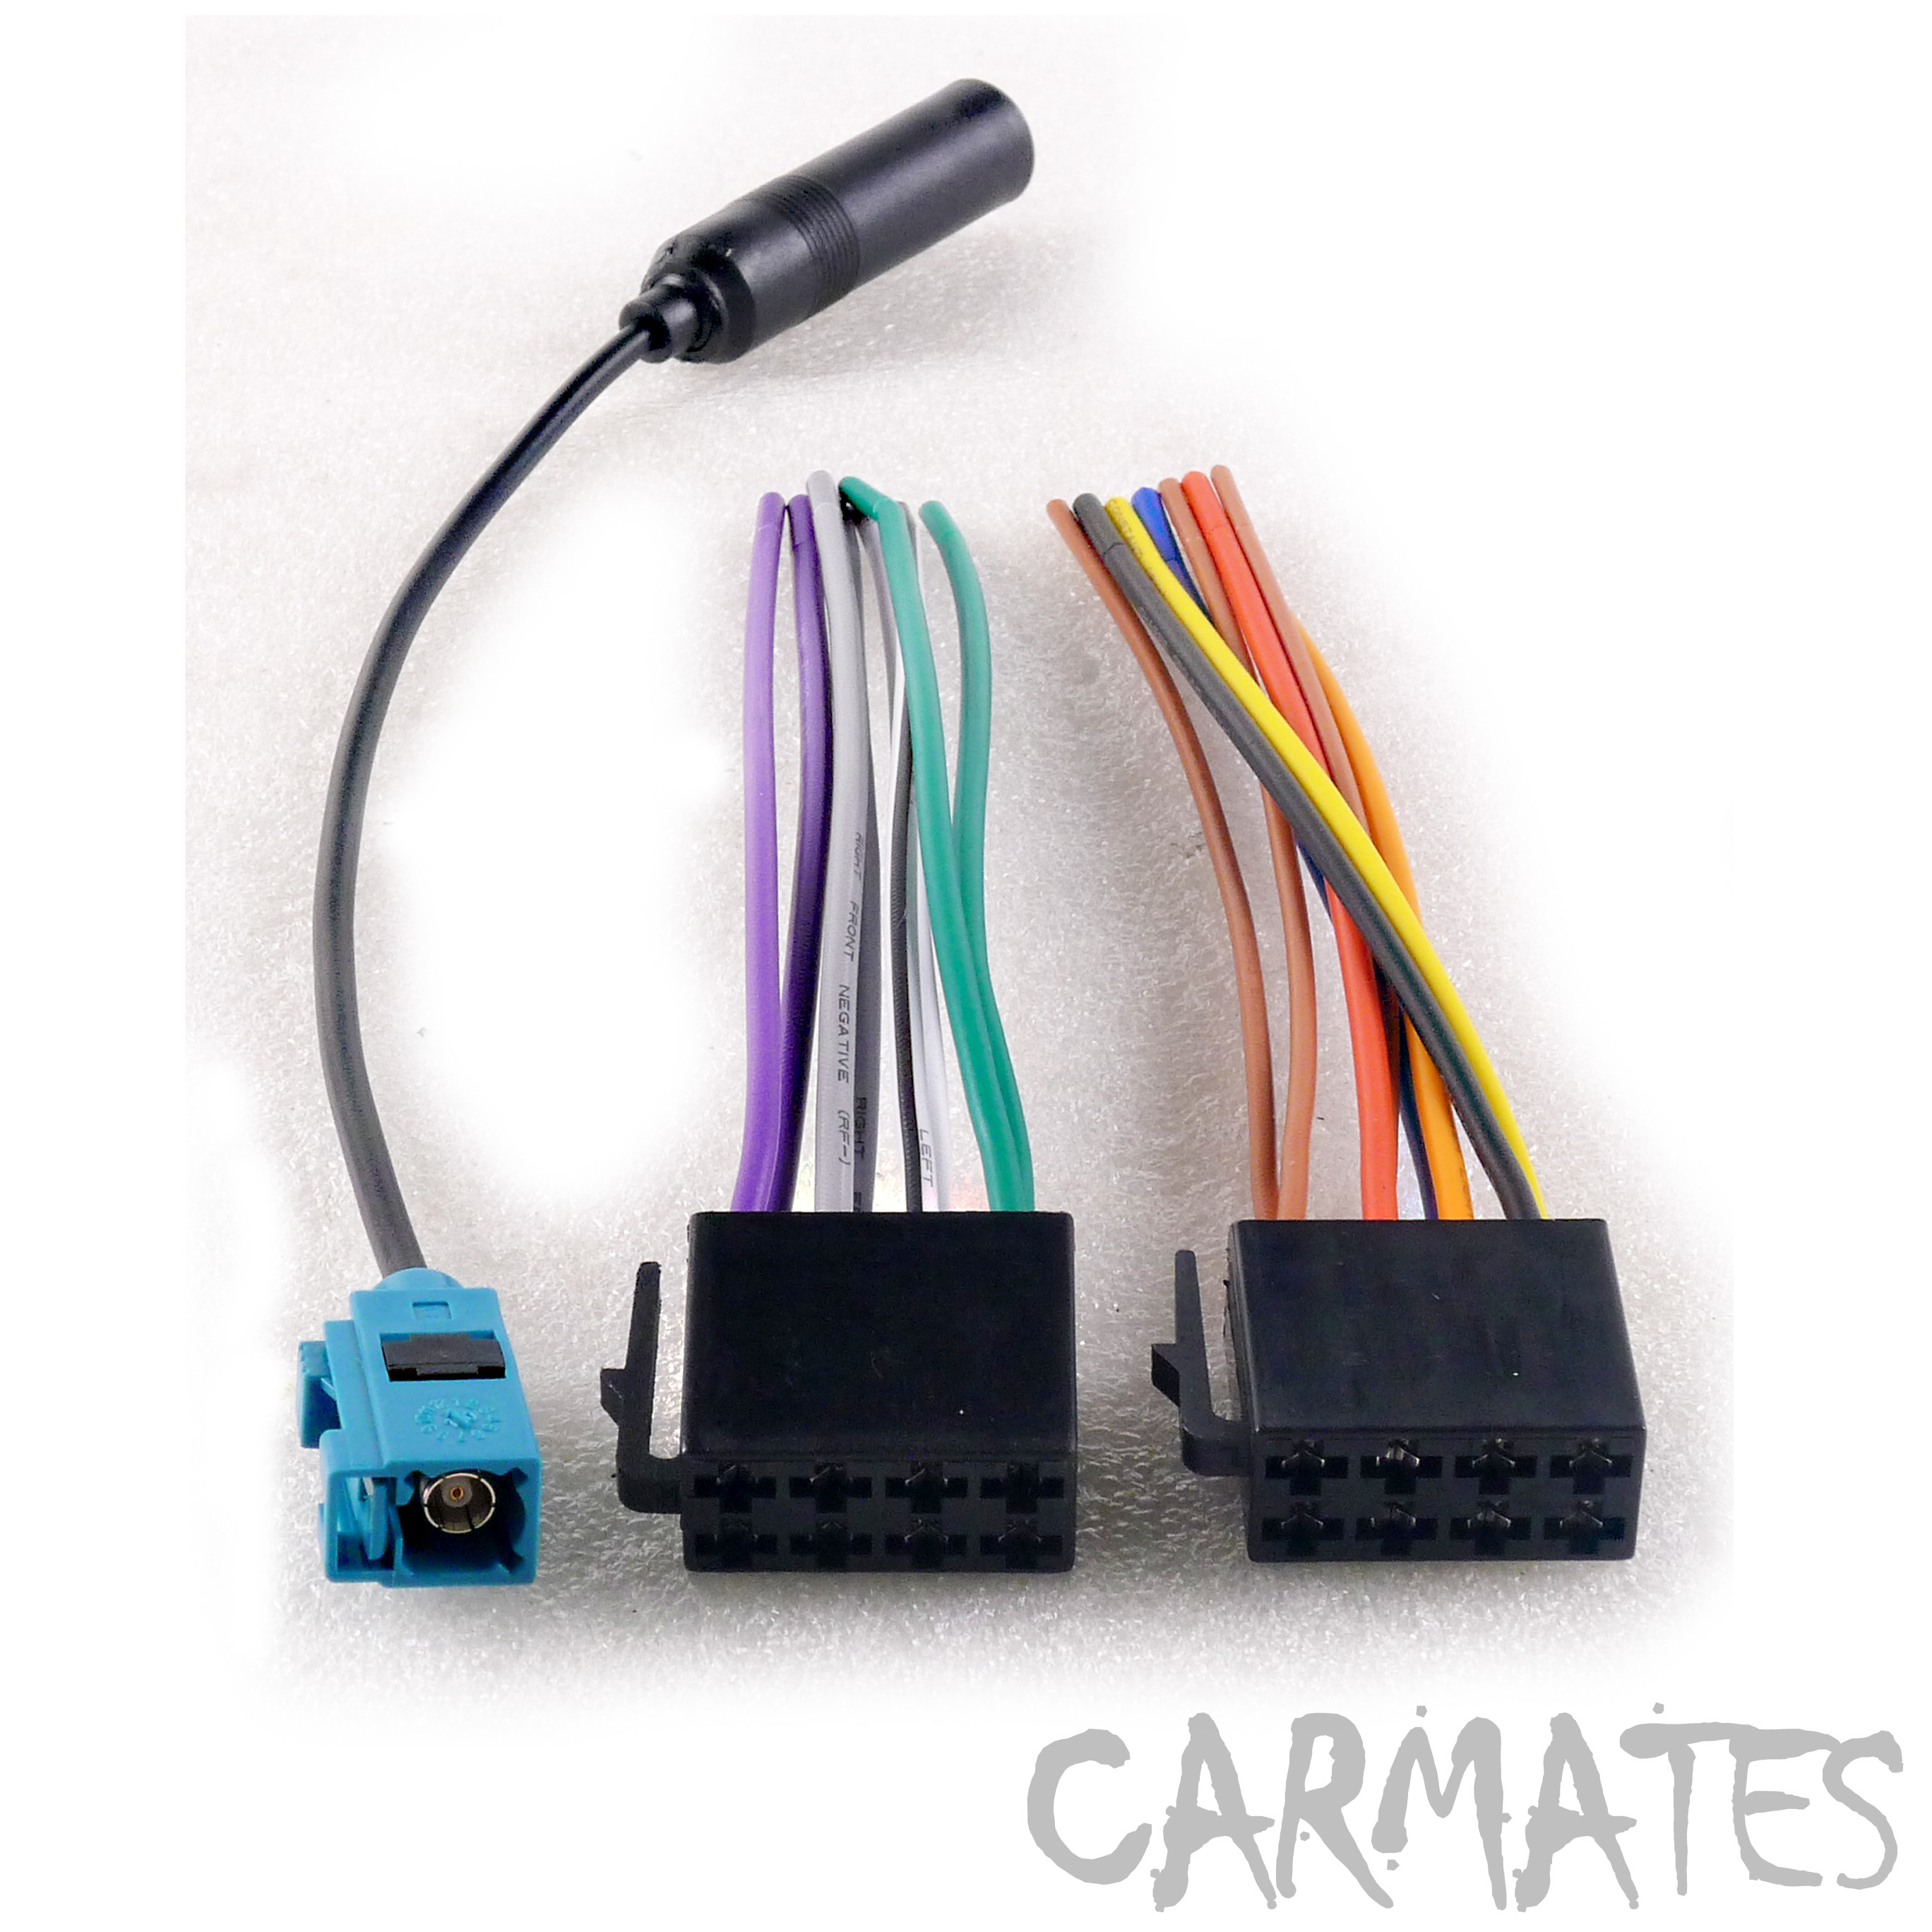 car stereo wiring harness adapter for vw    car    radio    stereo    cd player    wiring       harness       for vw    radio     car    radio    stereo    cd player    wiring       harness       for vw    radio